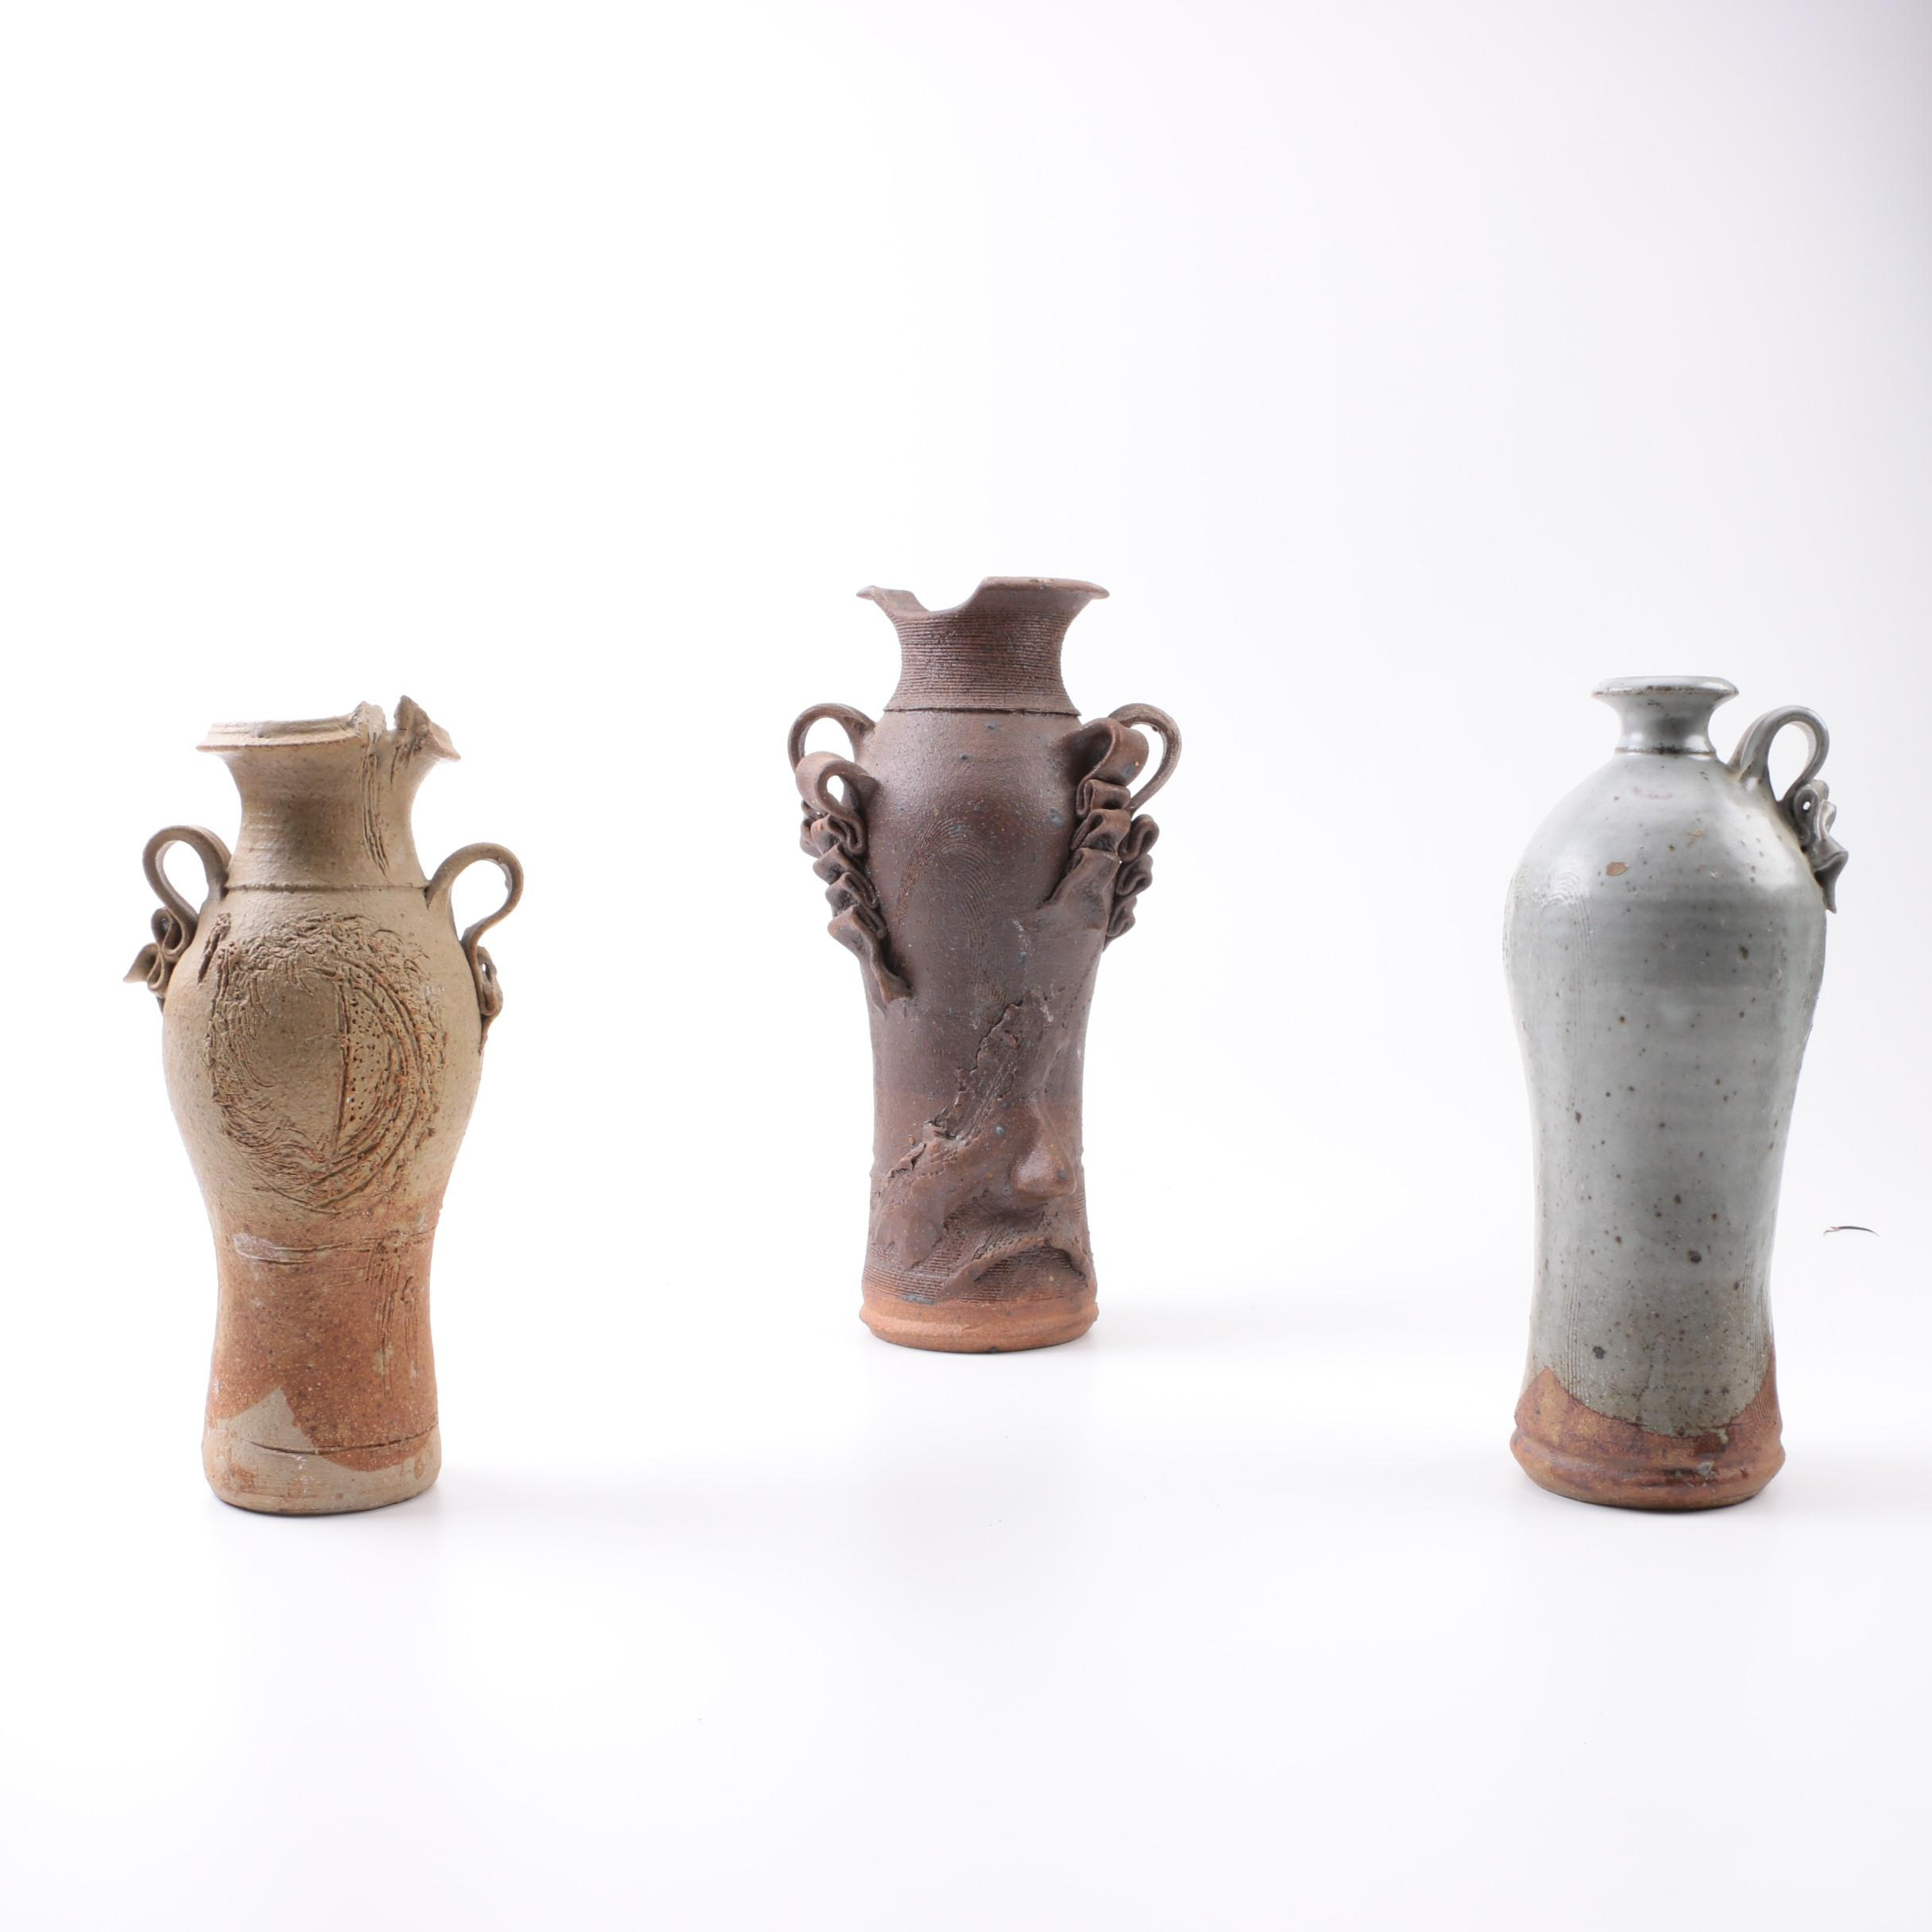 Collection of Signed Hand Thrown Stoneware Vessels By Nero